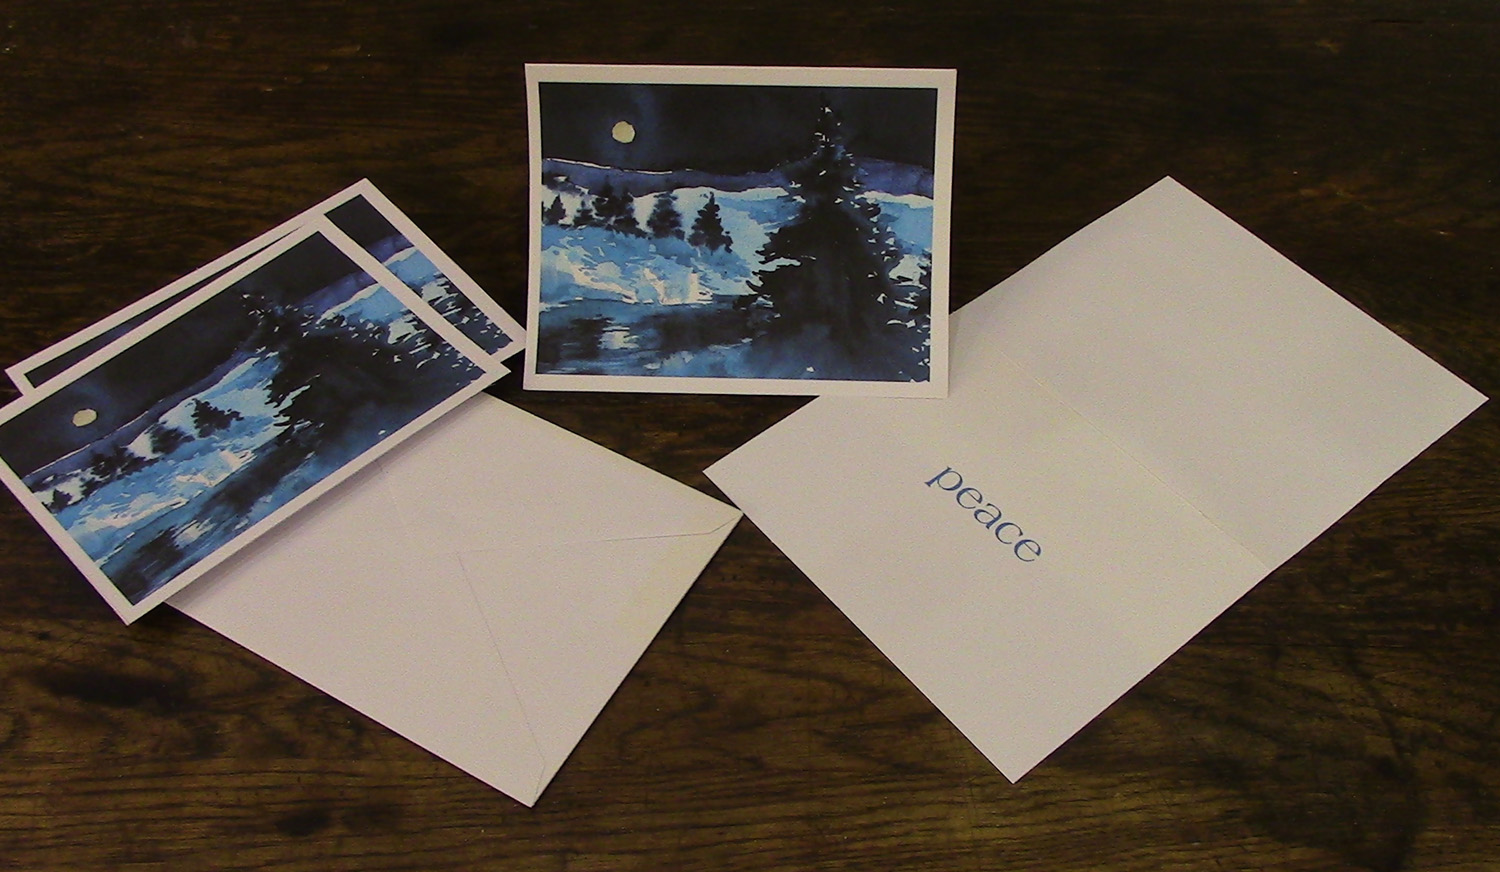 Winter holiday greeting cards simple card with a simple message winter holiday greeting cards simple card with a simple message peace m4hsunfo